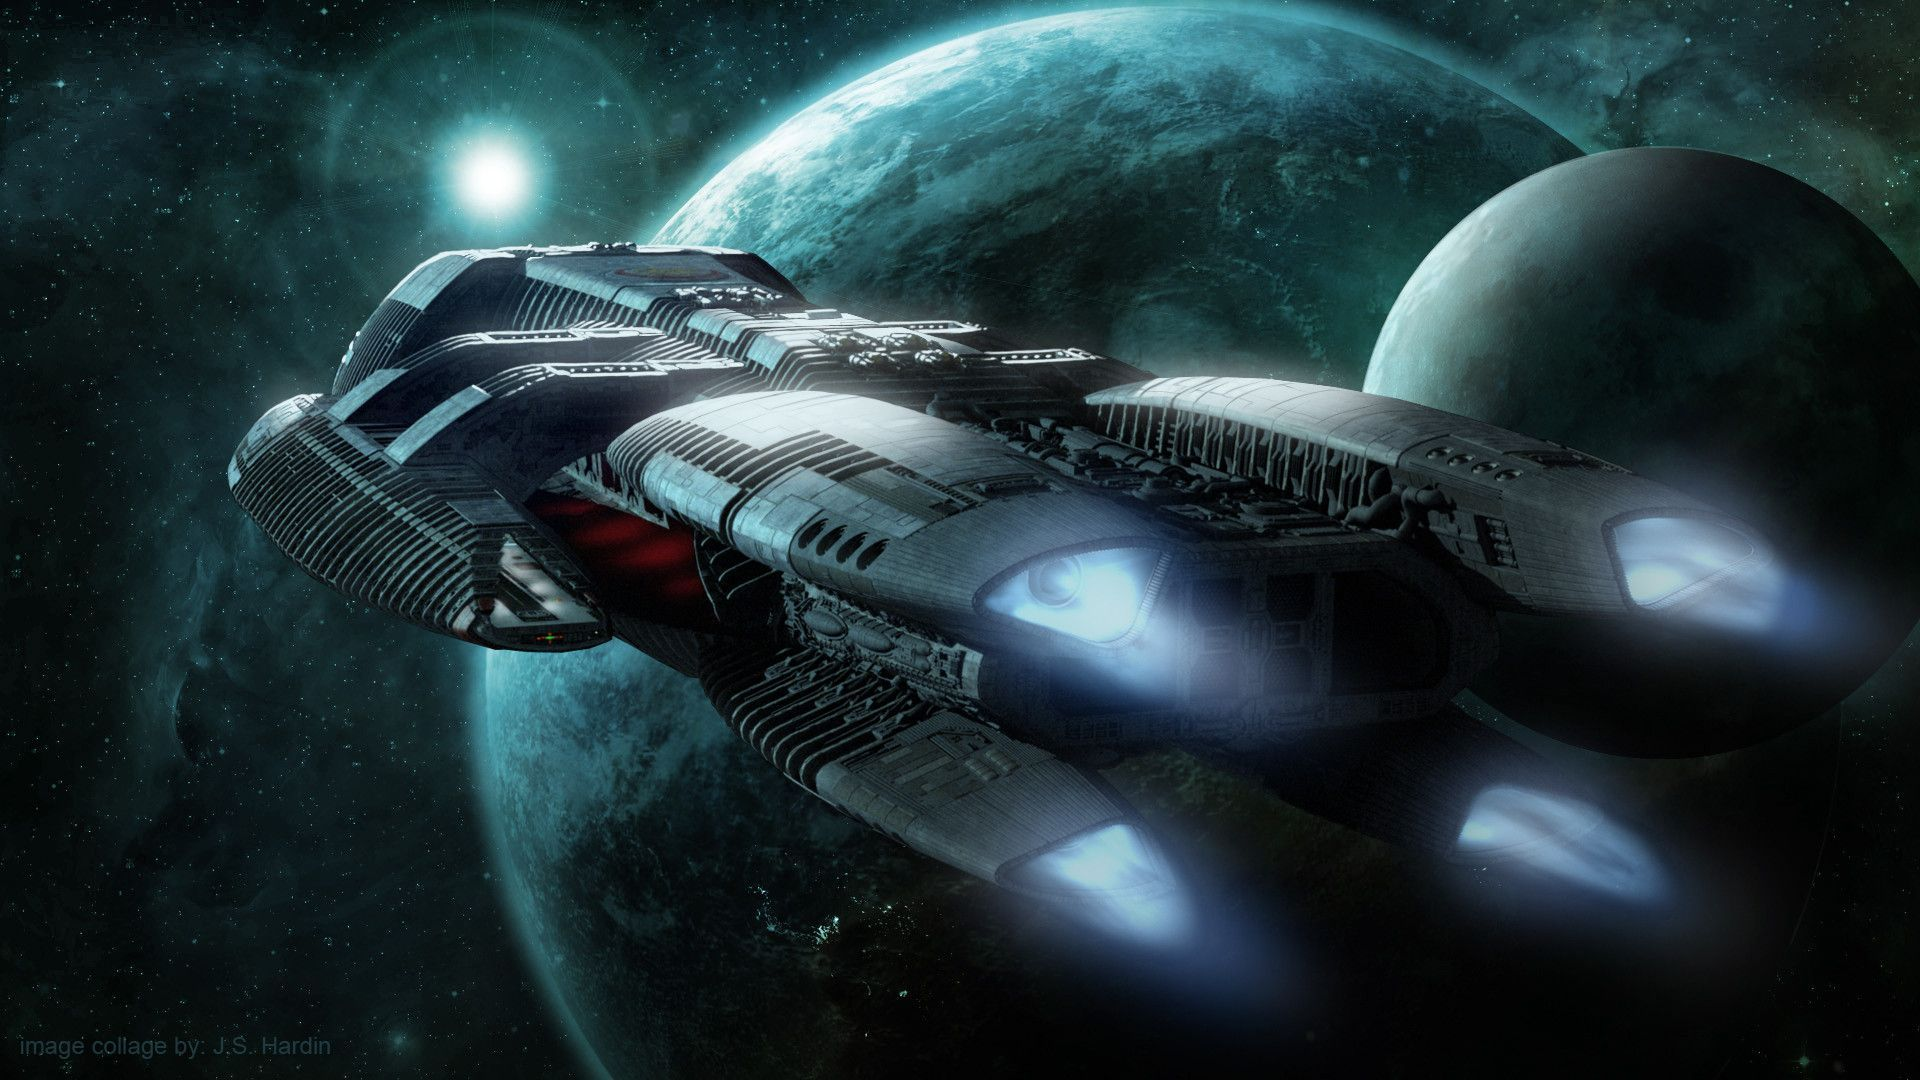 Download This Awesome Wallpaper Wallpaper Cave Battlestar